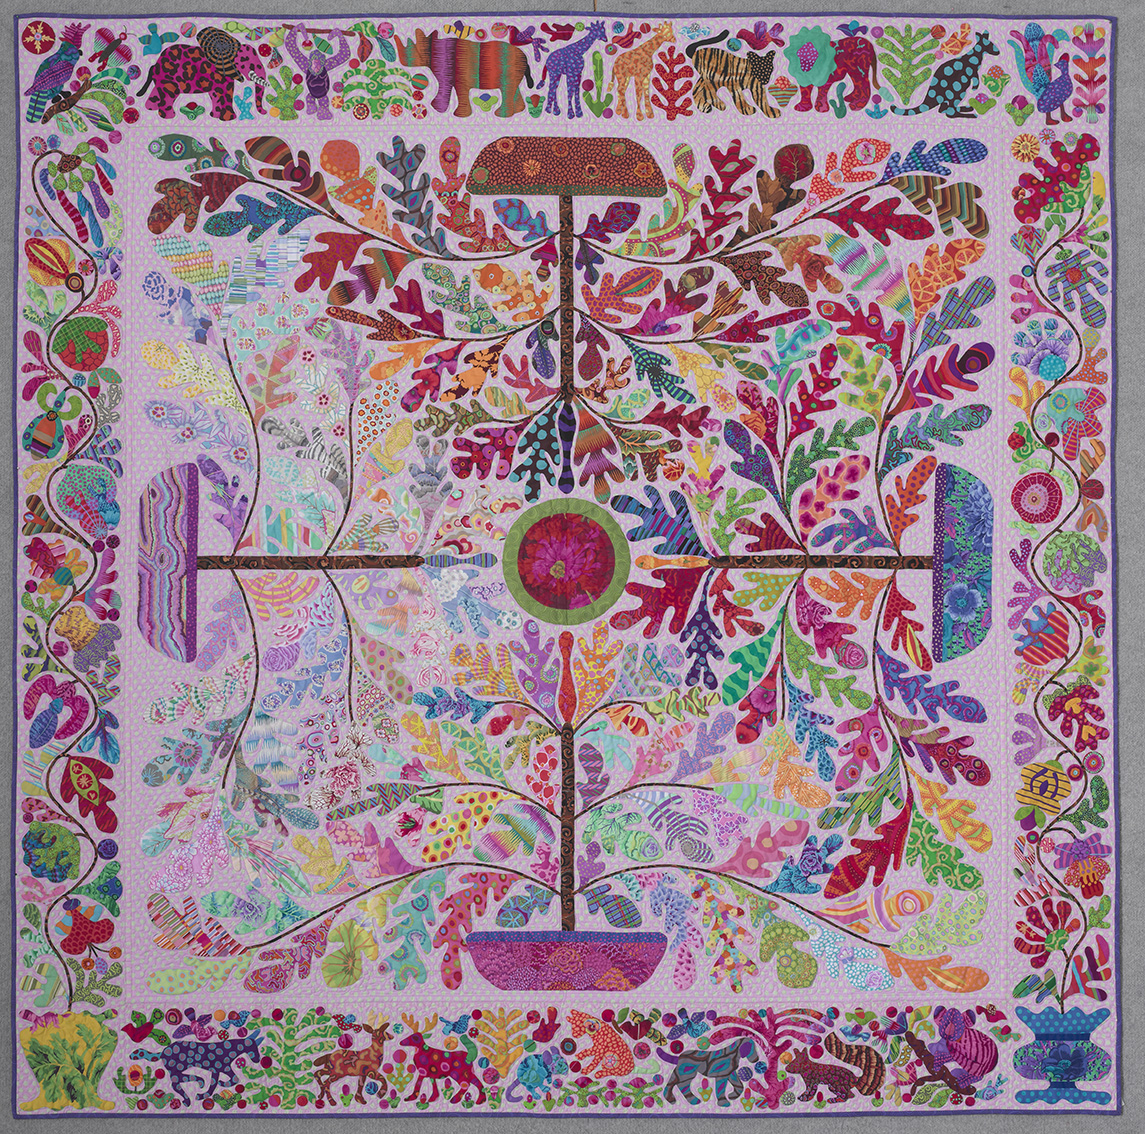 Kim Mclean Quilt Patterns.Glorious Applique Trees Of The Four Seasons 1